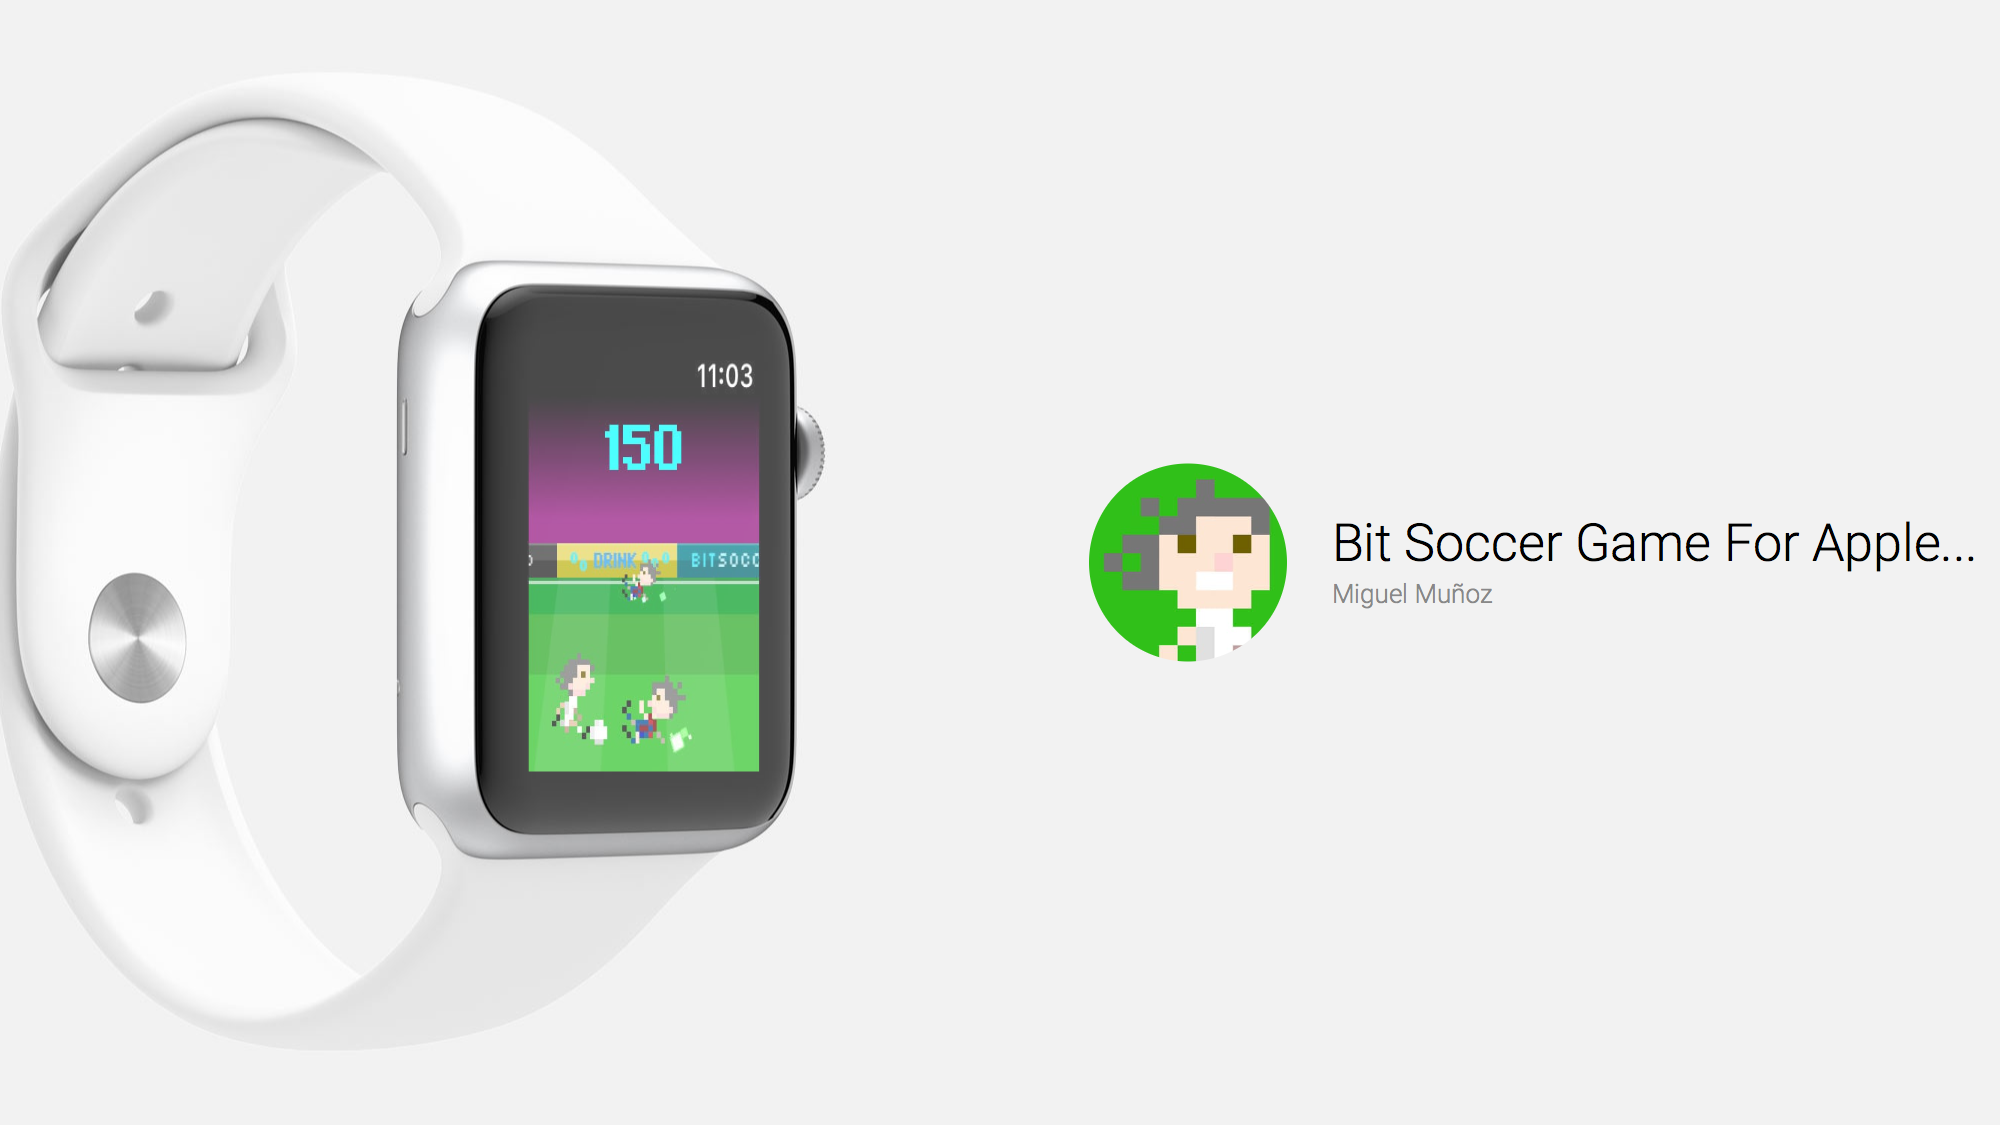 Bit Soccer Brings 8-Bit Action to the Apple Watch